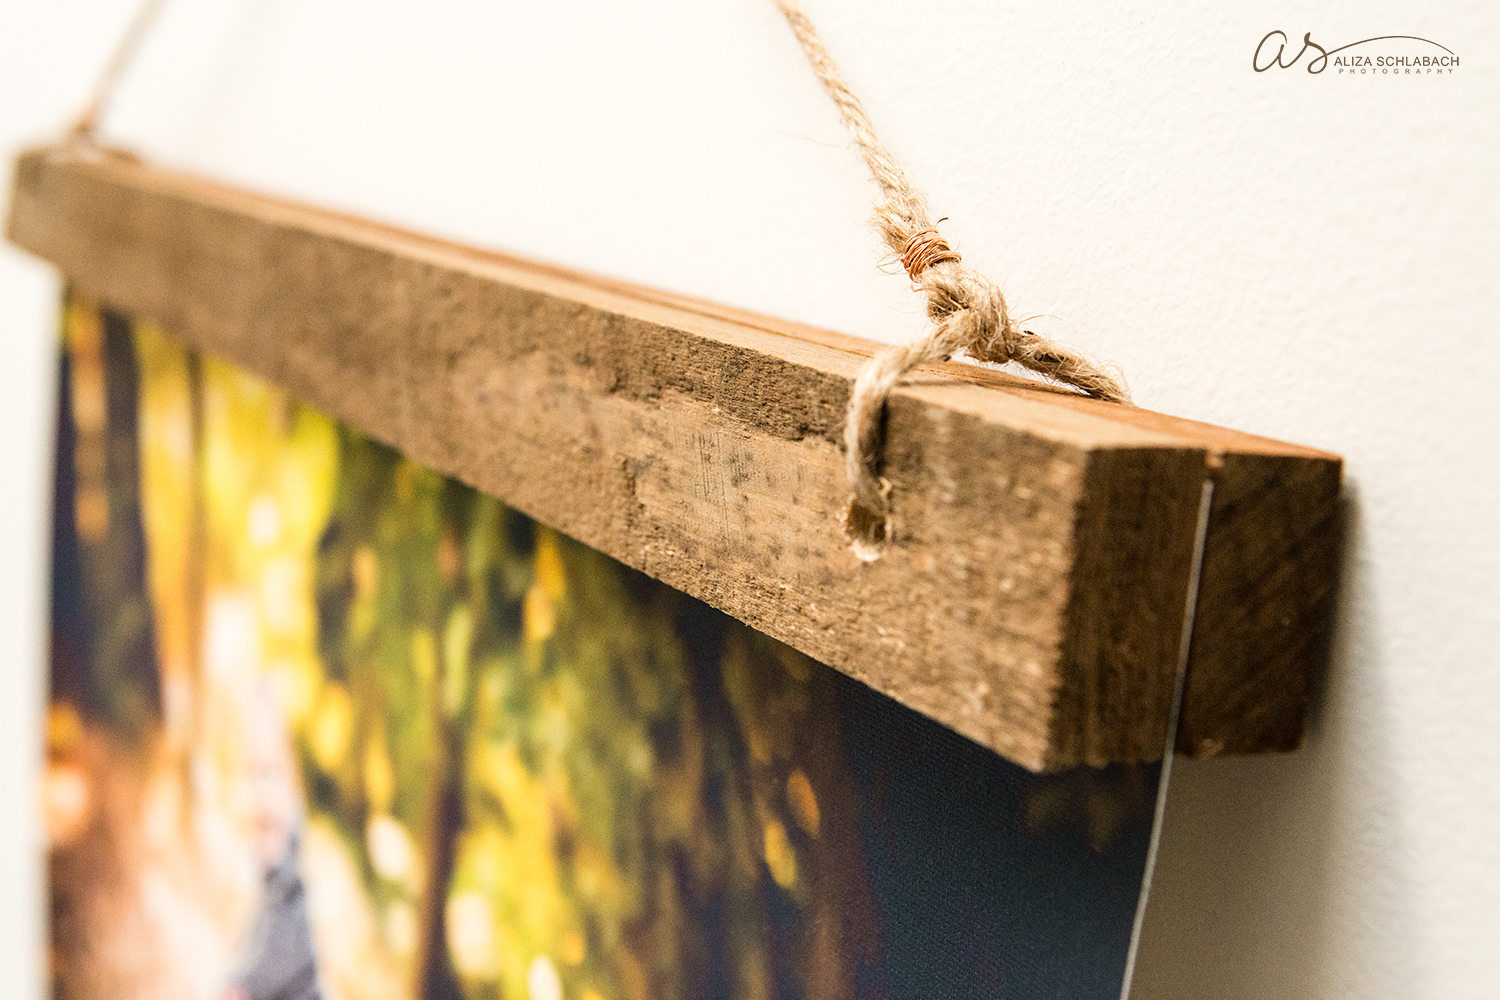 Detail of canvas mounted between pieces of reclaimed barnwood